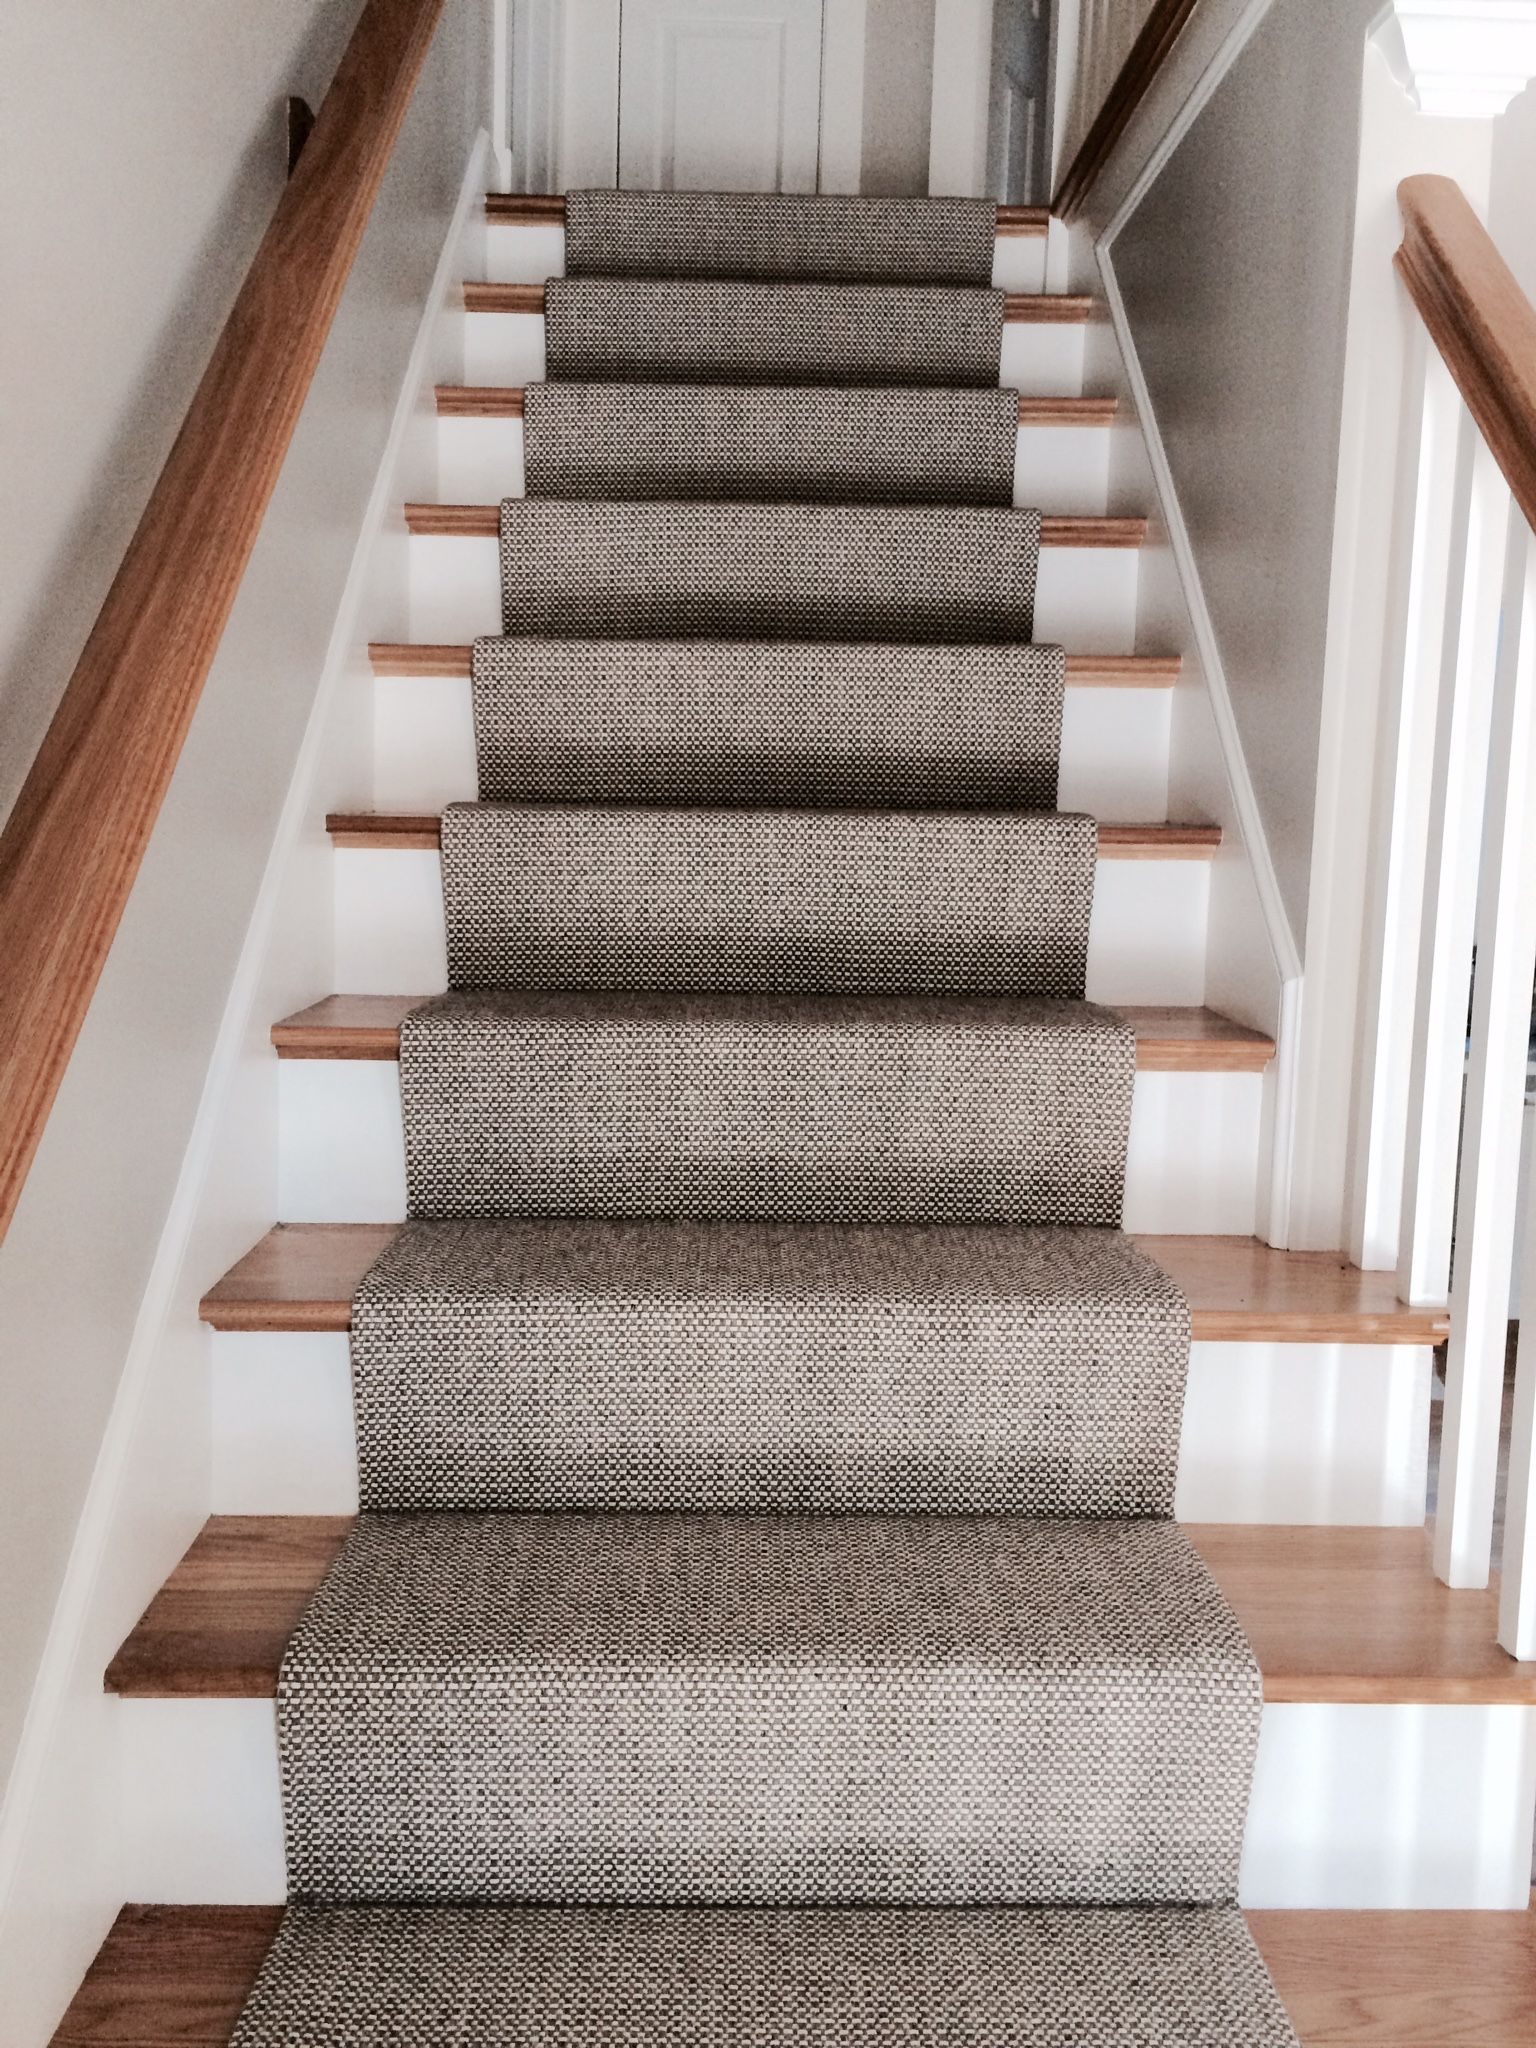 Merida Flat Woven Wool Stair Runner By The Carpet Workroom The   Wool Carpet Runners For Stairs   Flooring   Woven   Rectangular Cord Treads   Stair Country Style   Modern